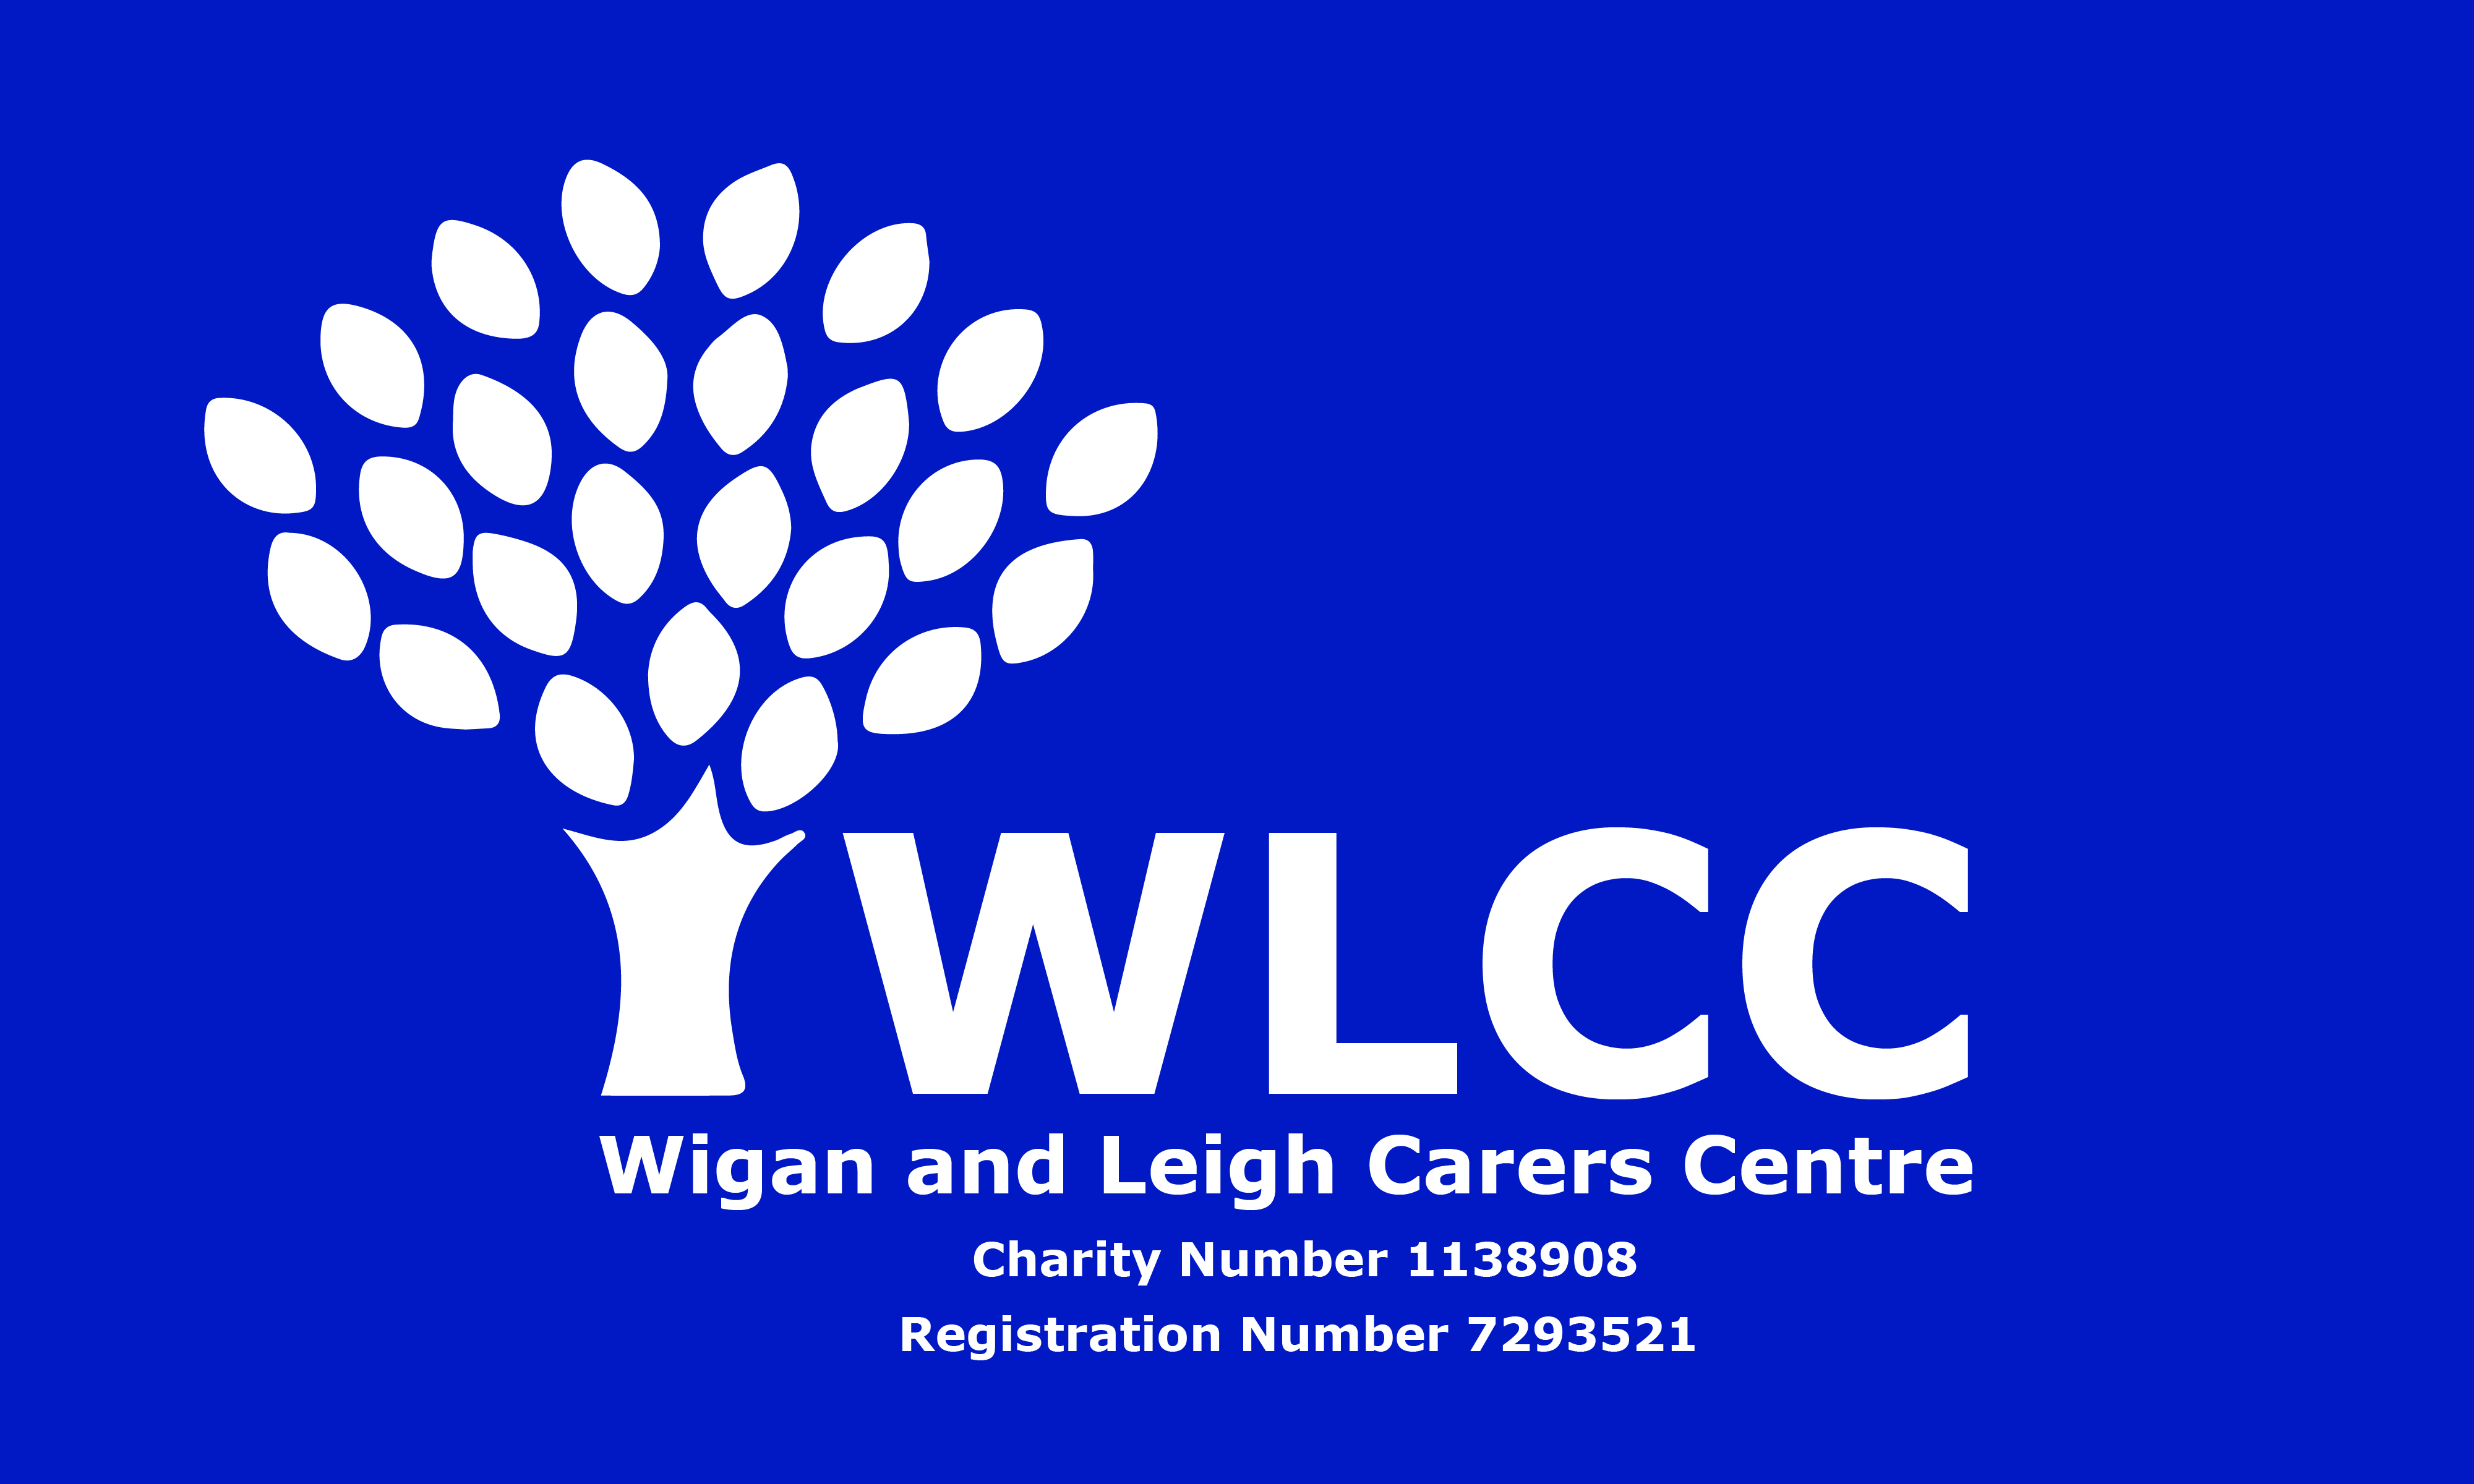 Wigan and Leigh Carers Centre